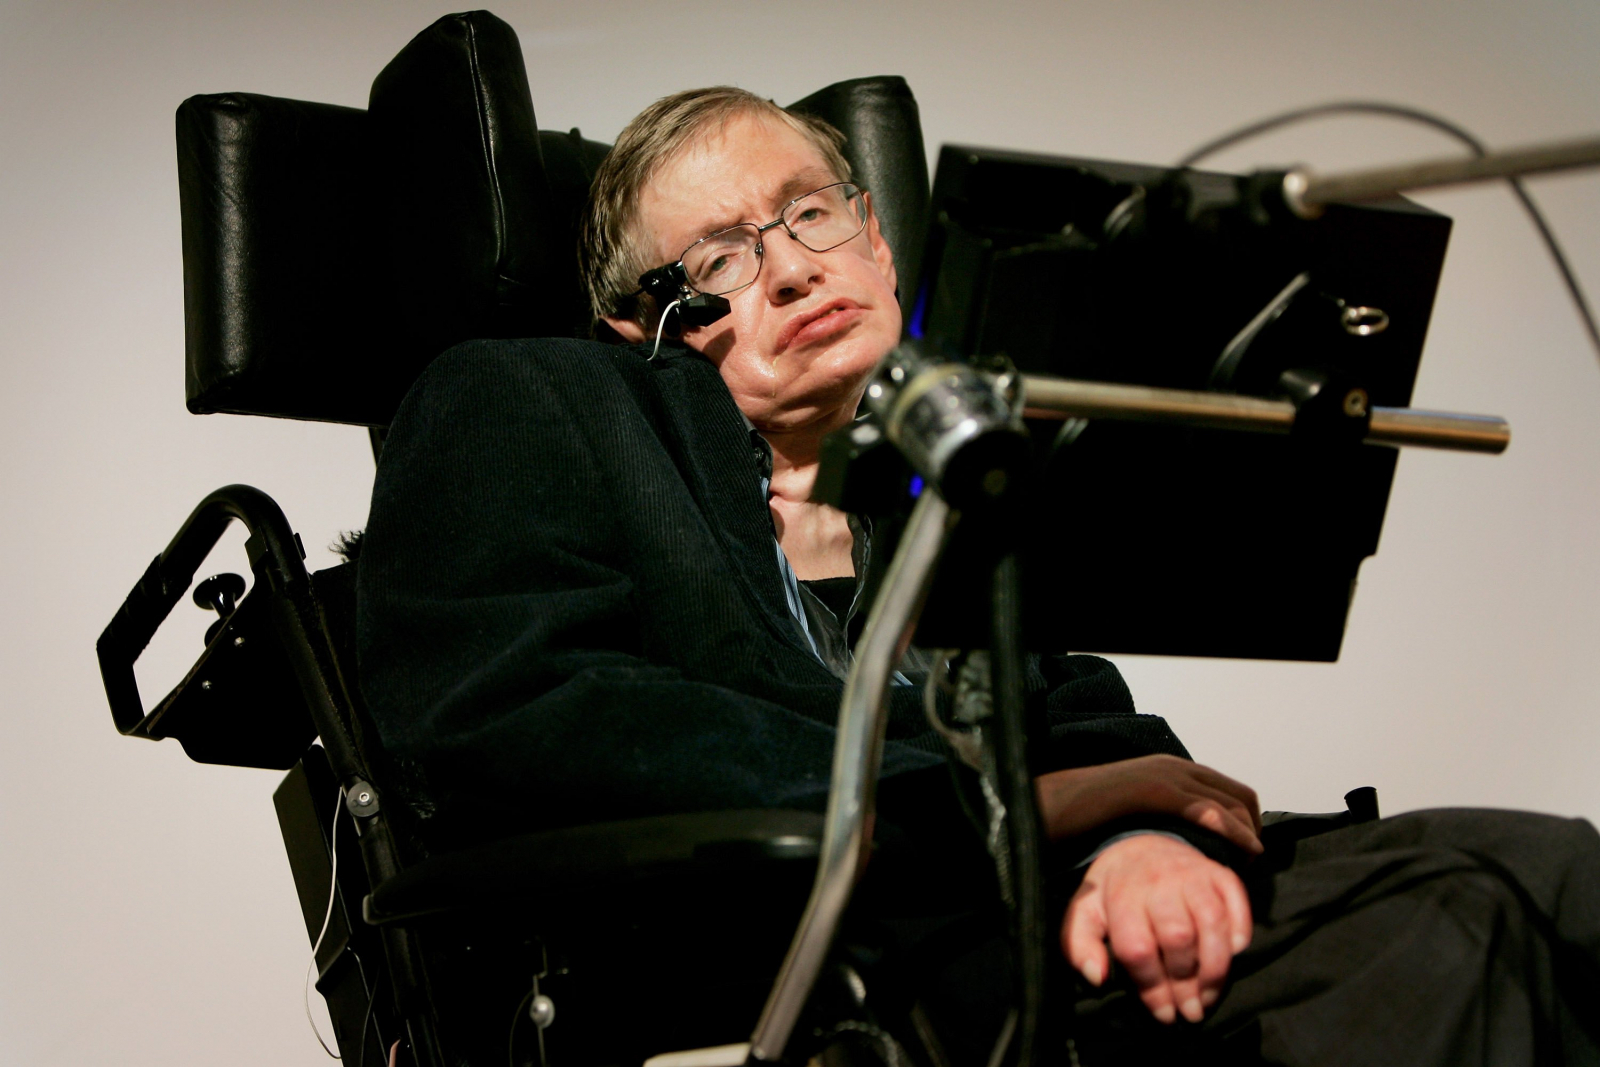 Stephen Hawking wheelchair